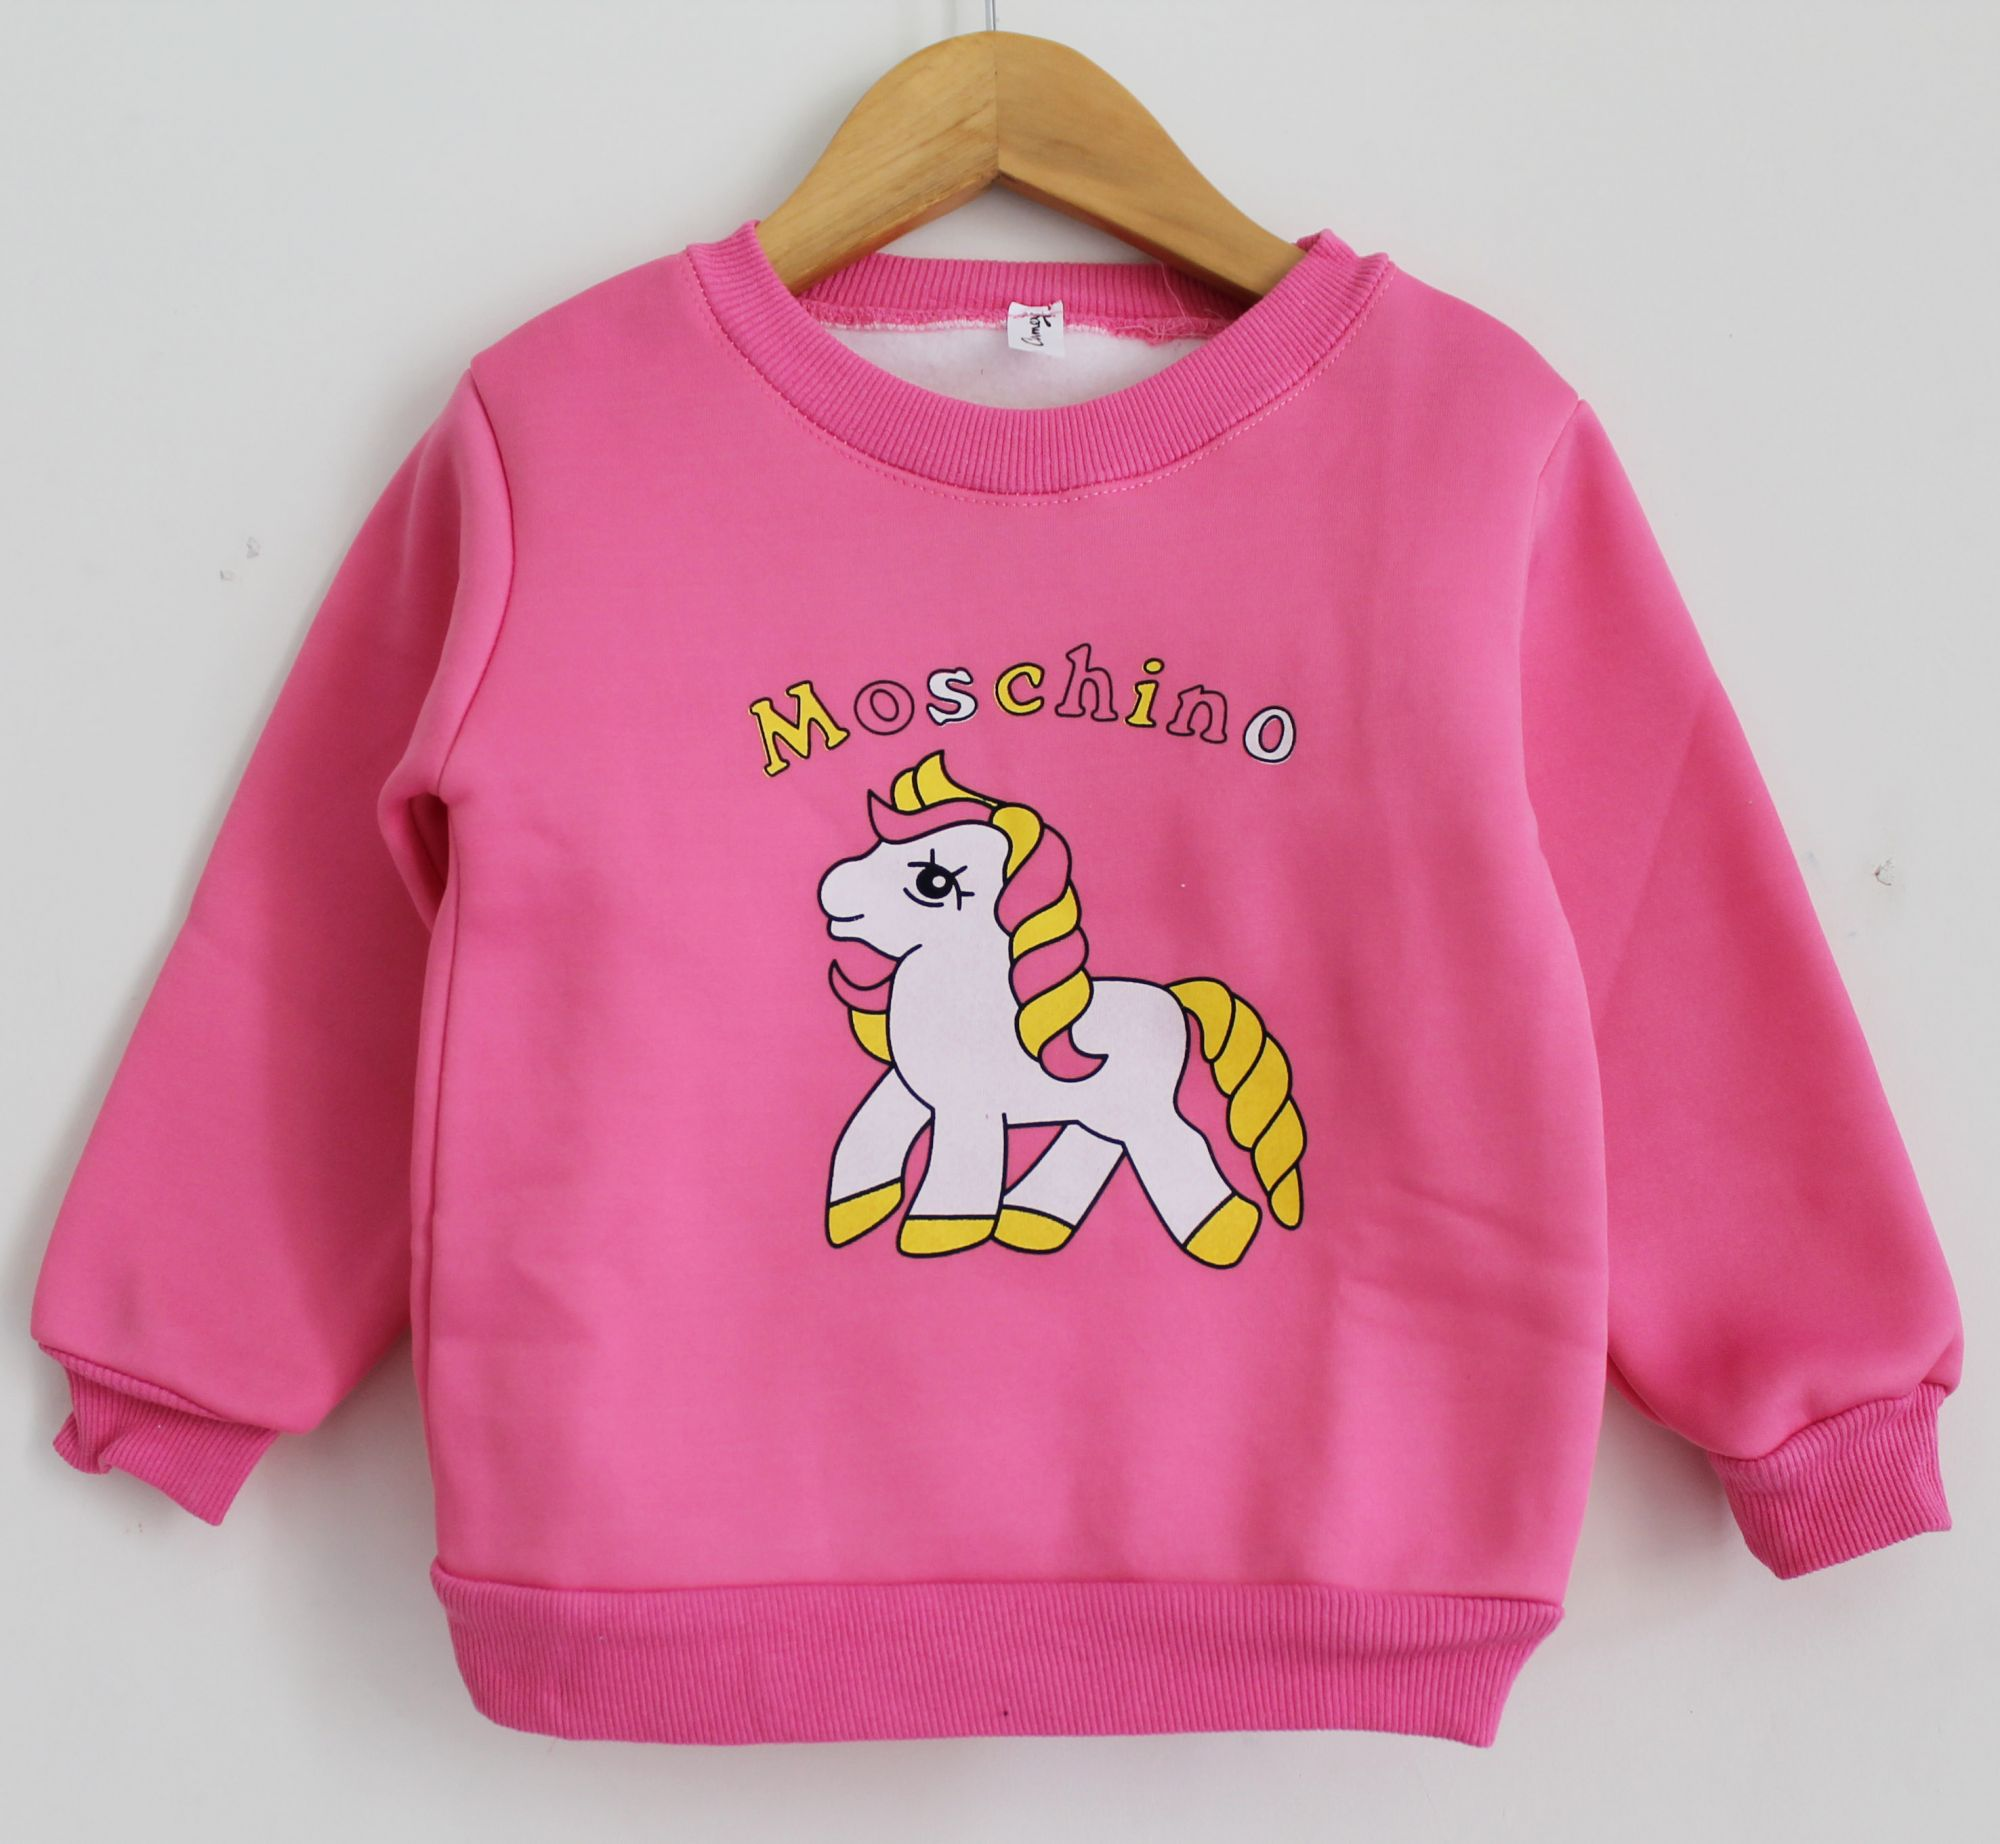 Unicorn Printed Sweatshirt for Kids